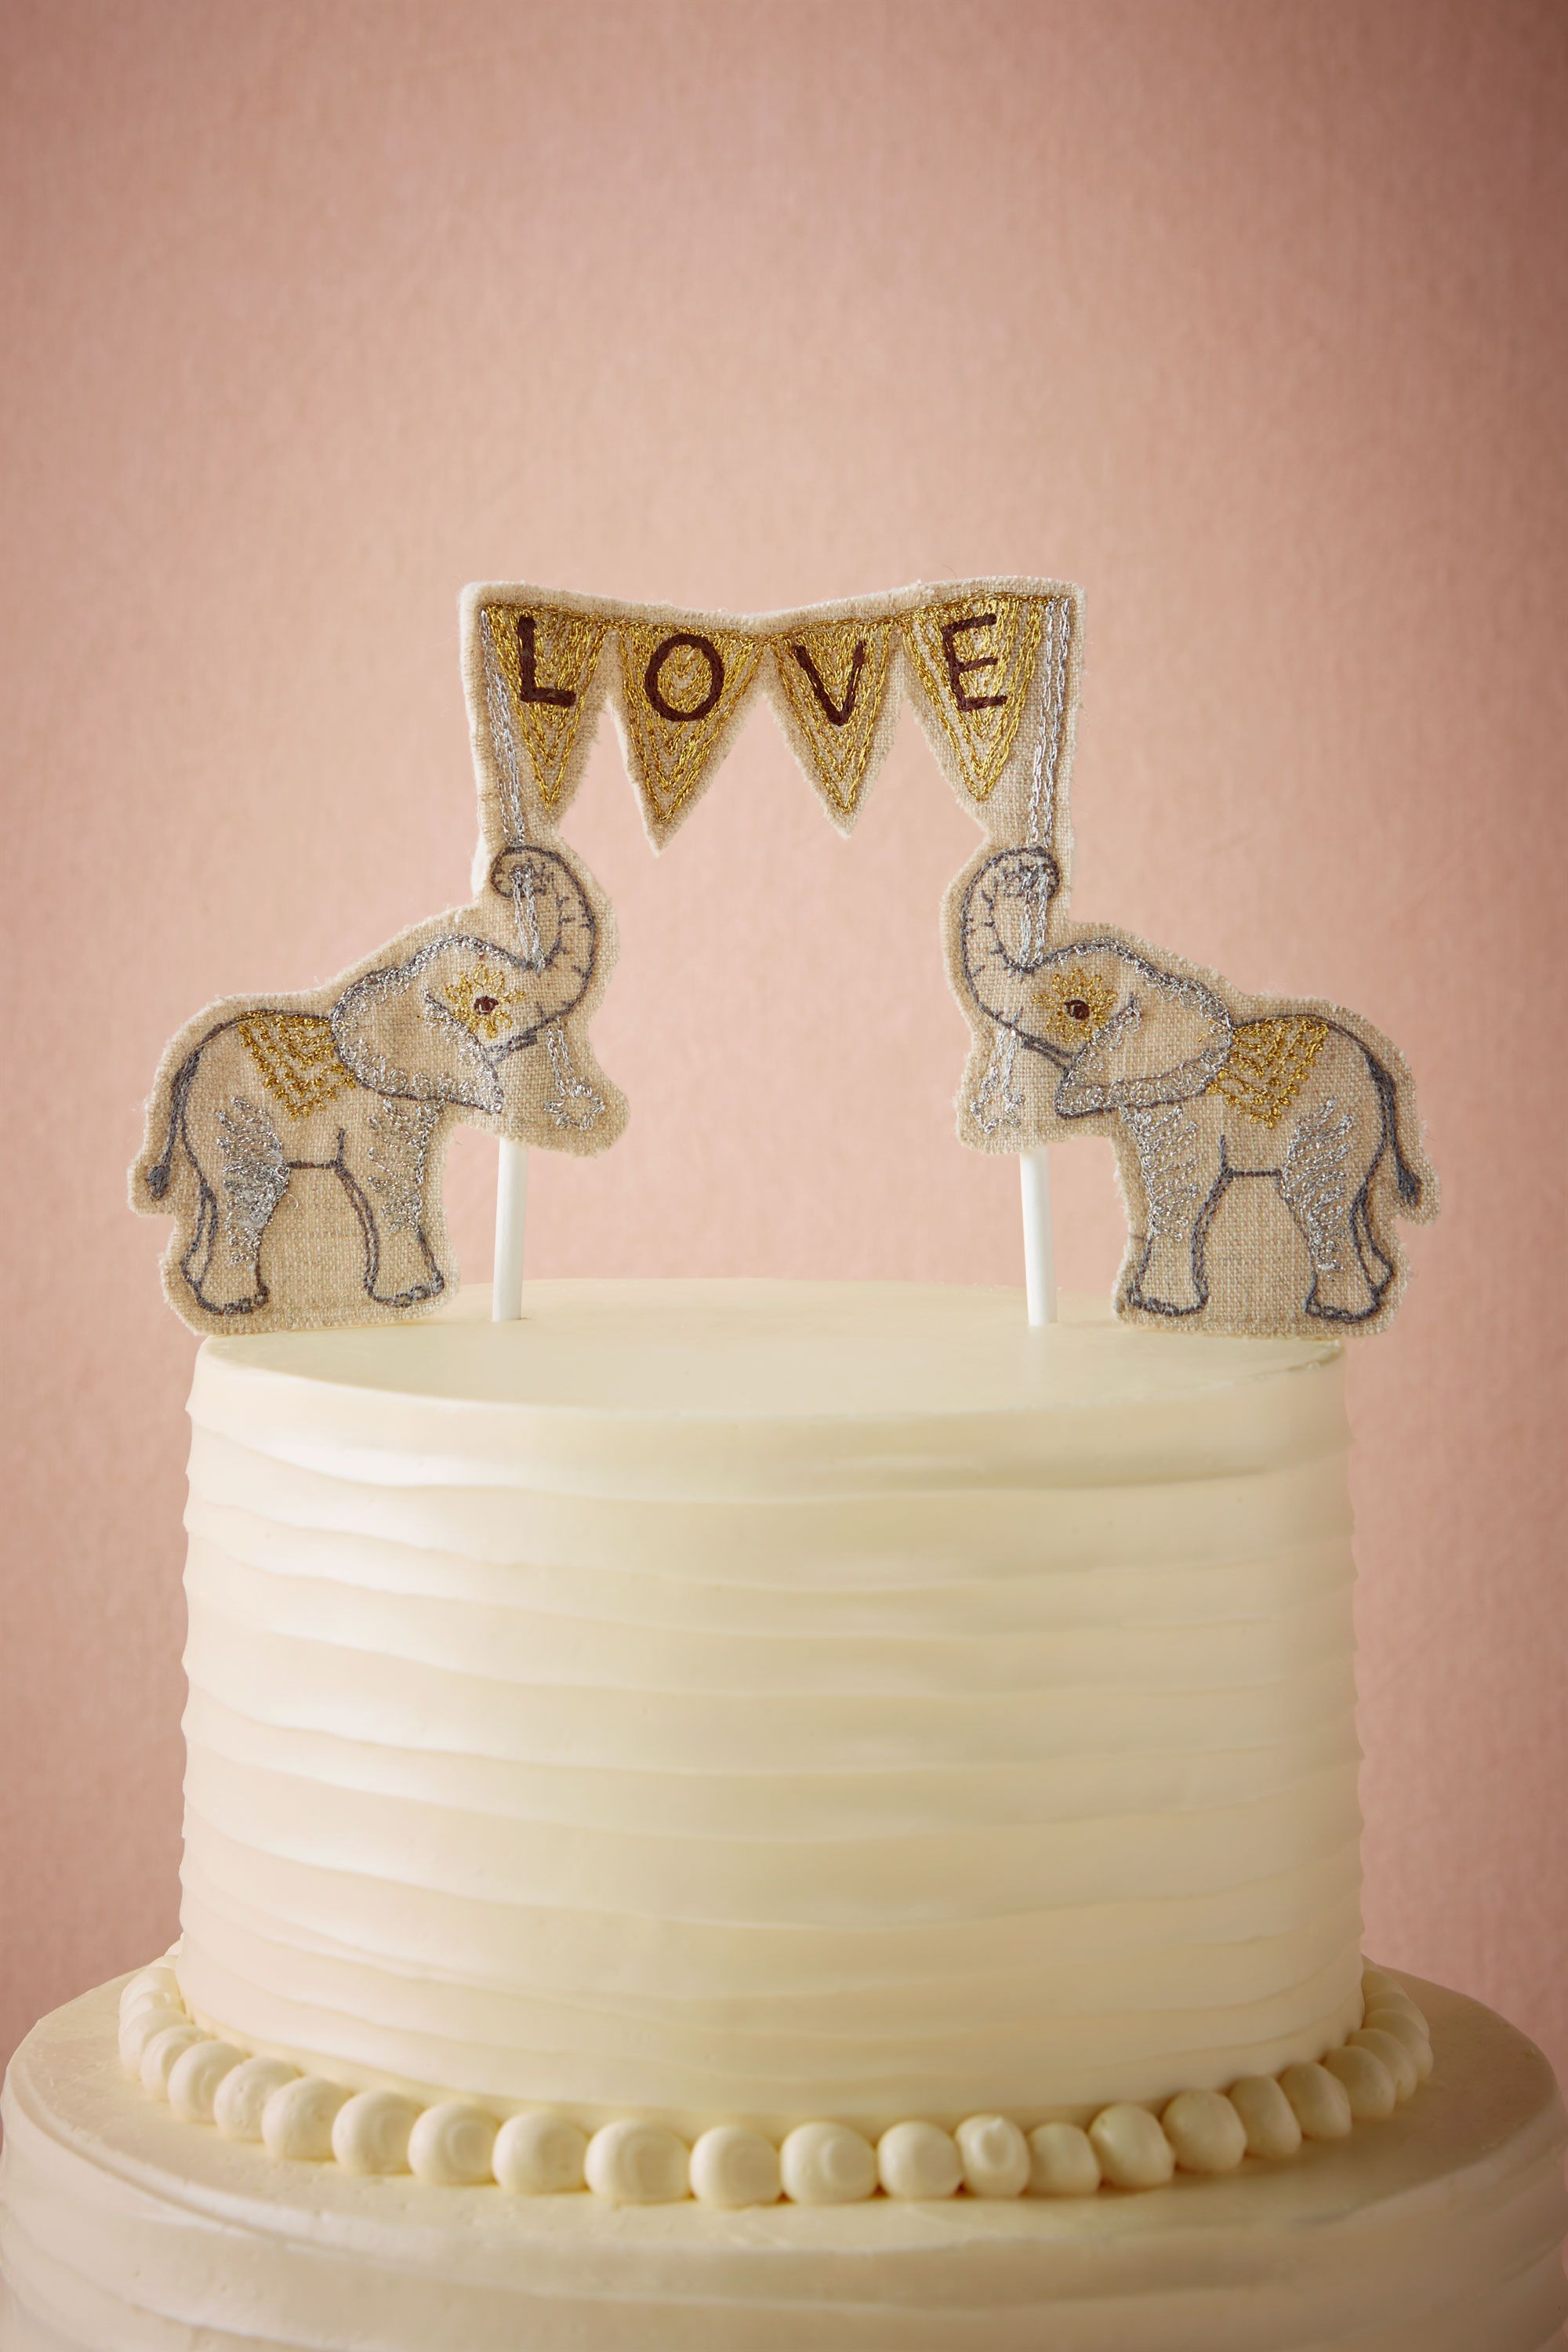 Bhldn Lovesome Elephants Cake Topper In Gifts Décor Accessories